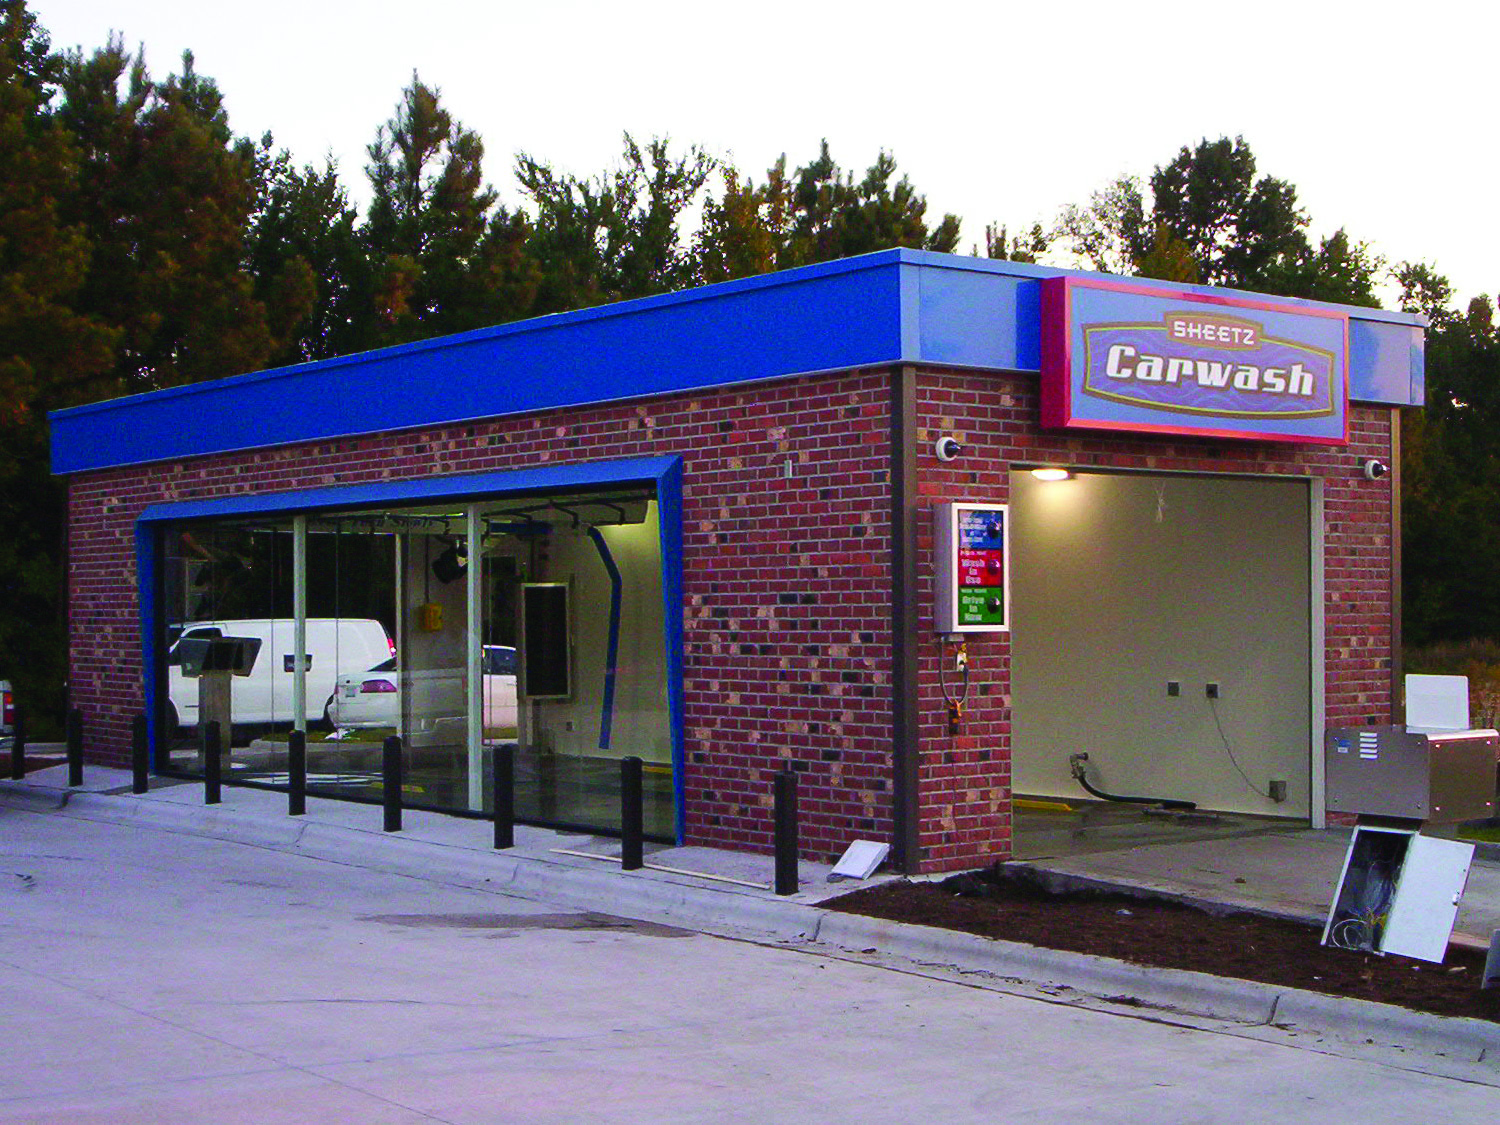 Genesis modular carwash building systems the only true modular carwash type solutioingenieria Images